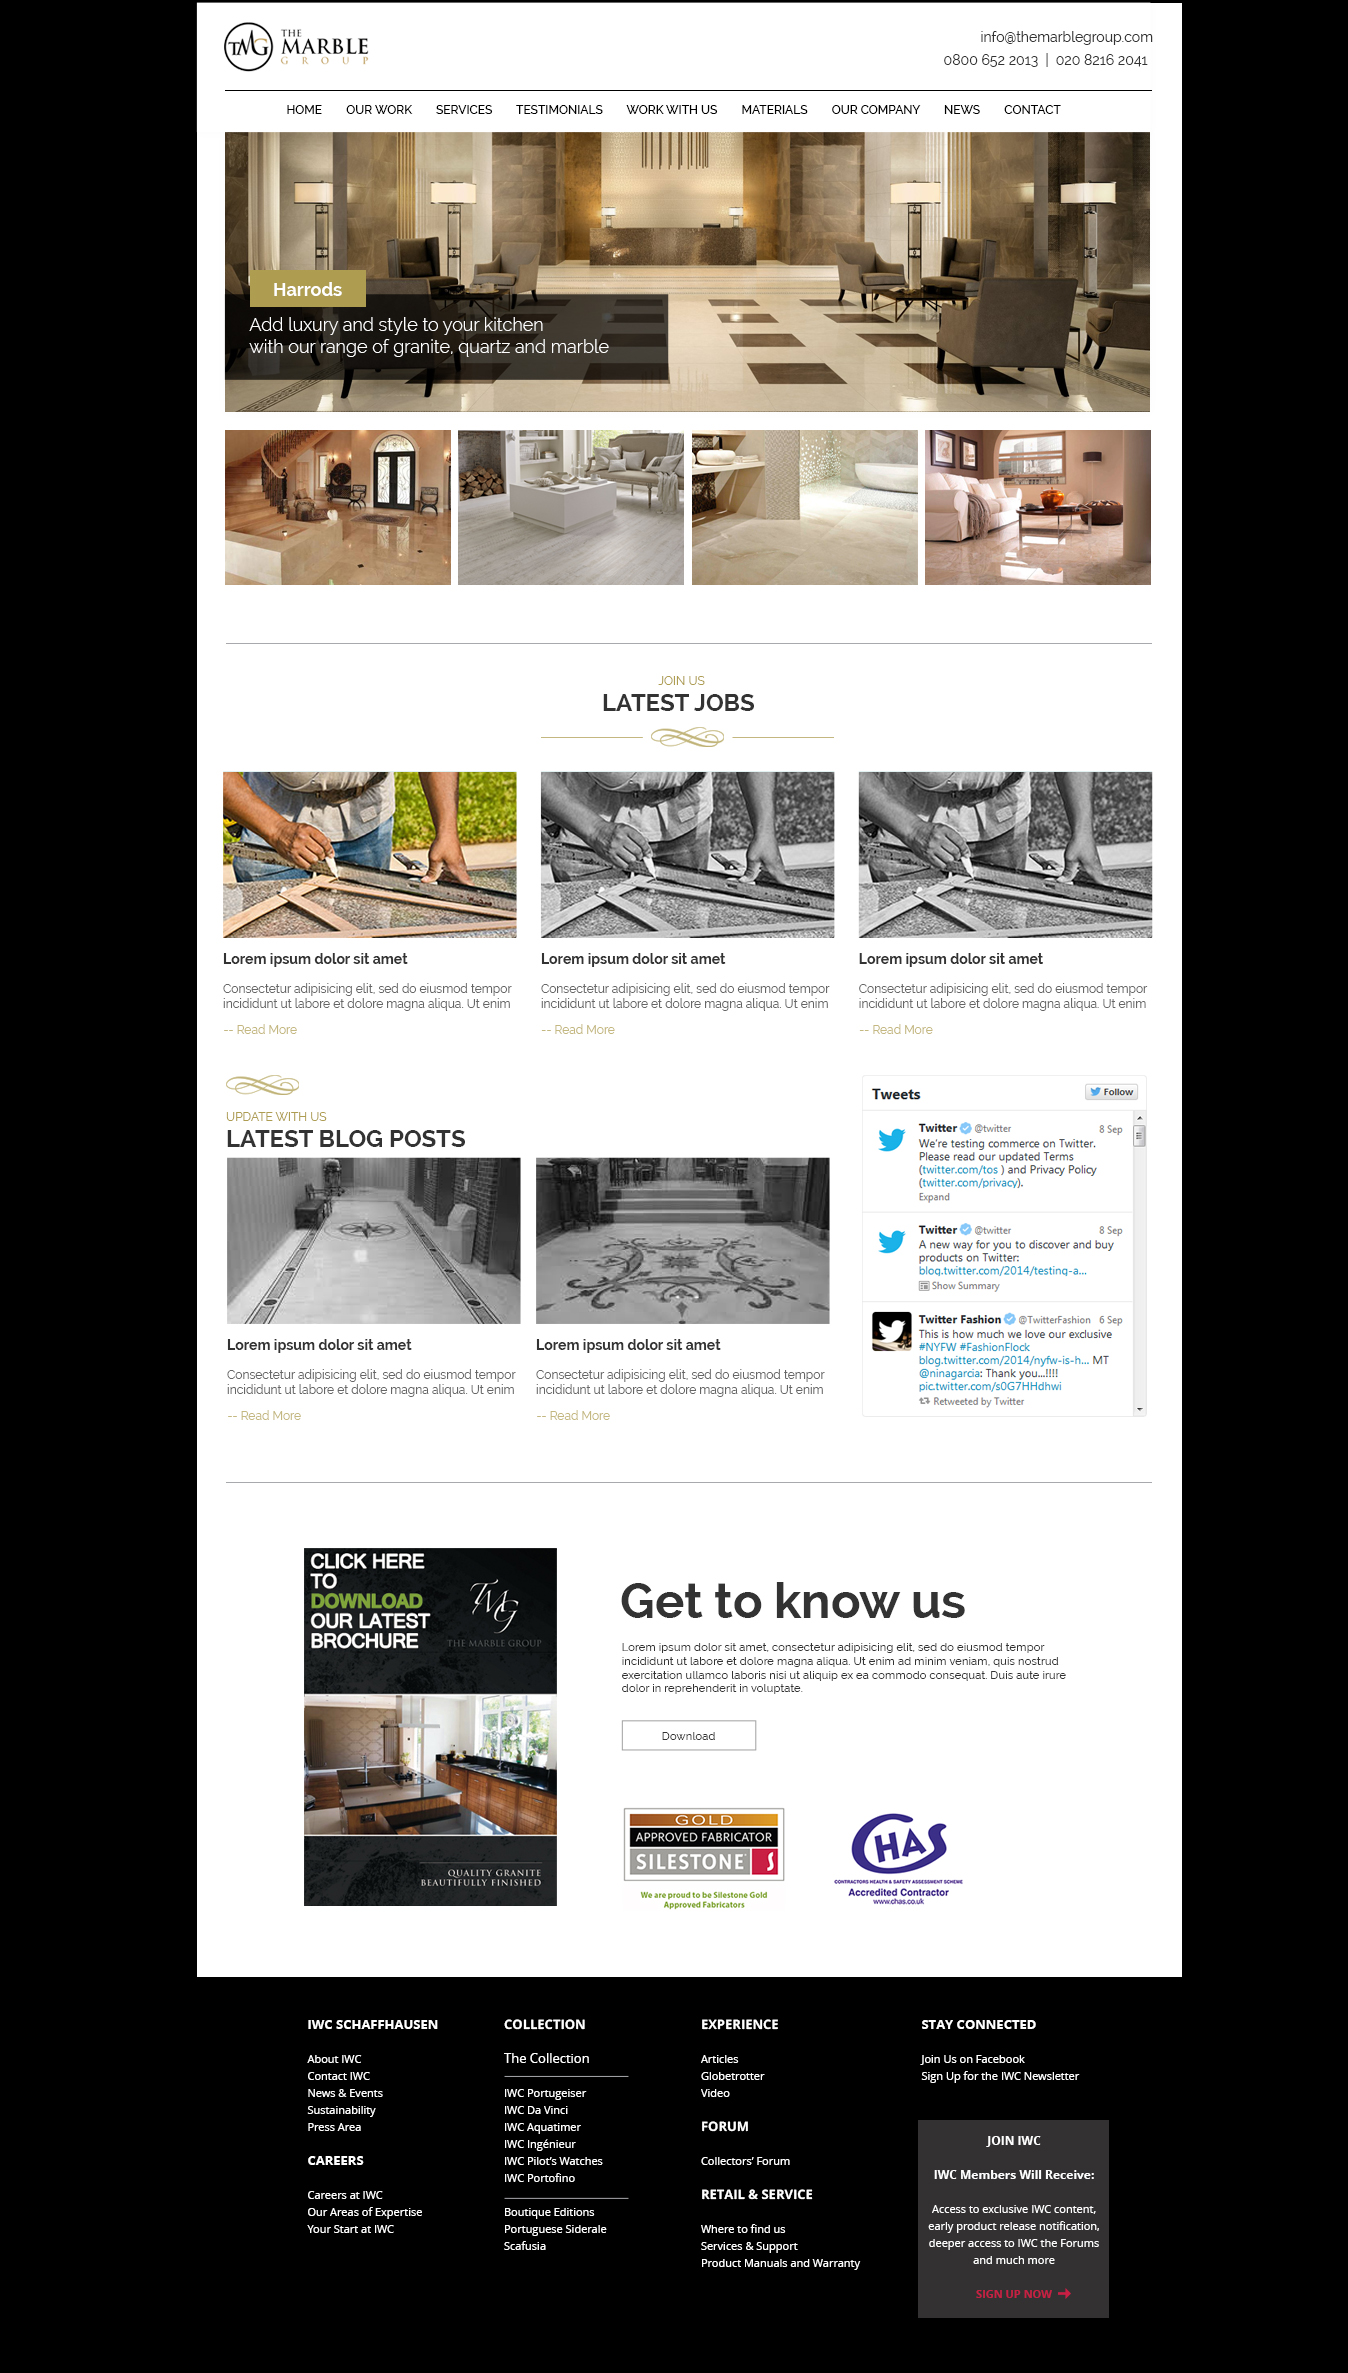 marble group homepage design